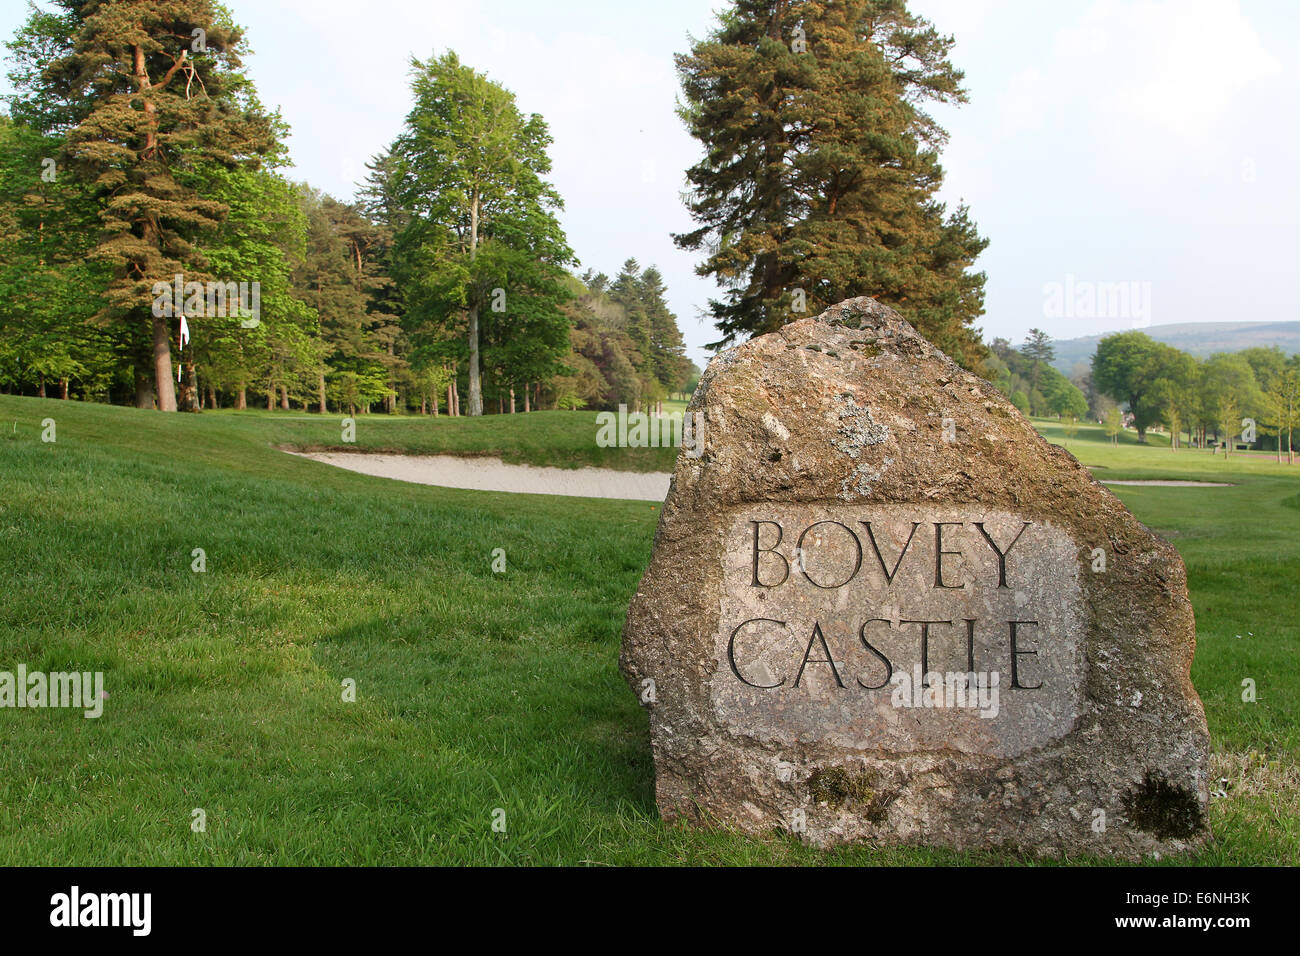 The entrance to Bovey Castle estate on Dartmoor National Park, Devon, England - Stock Image